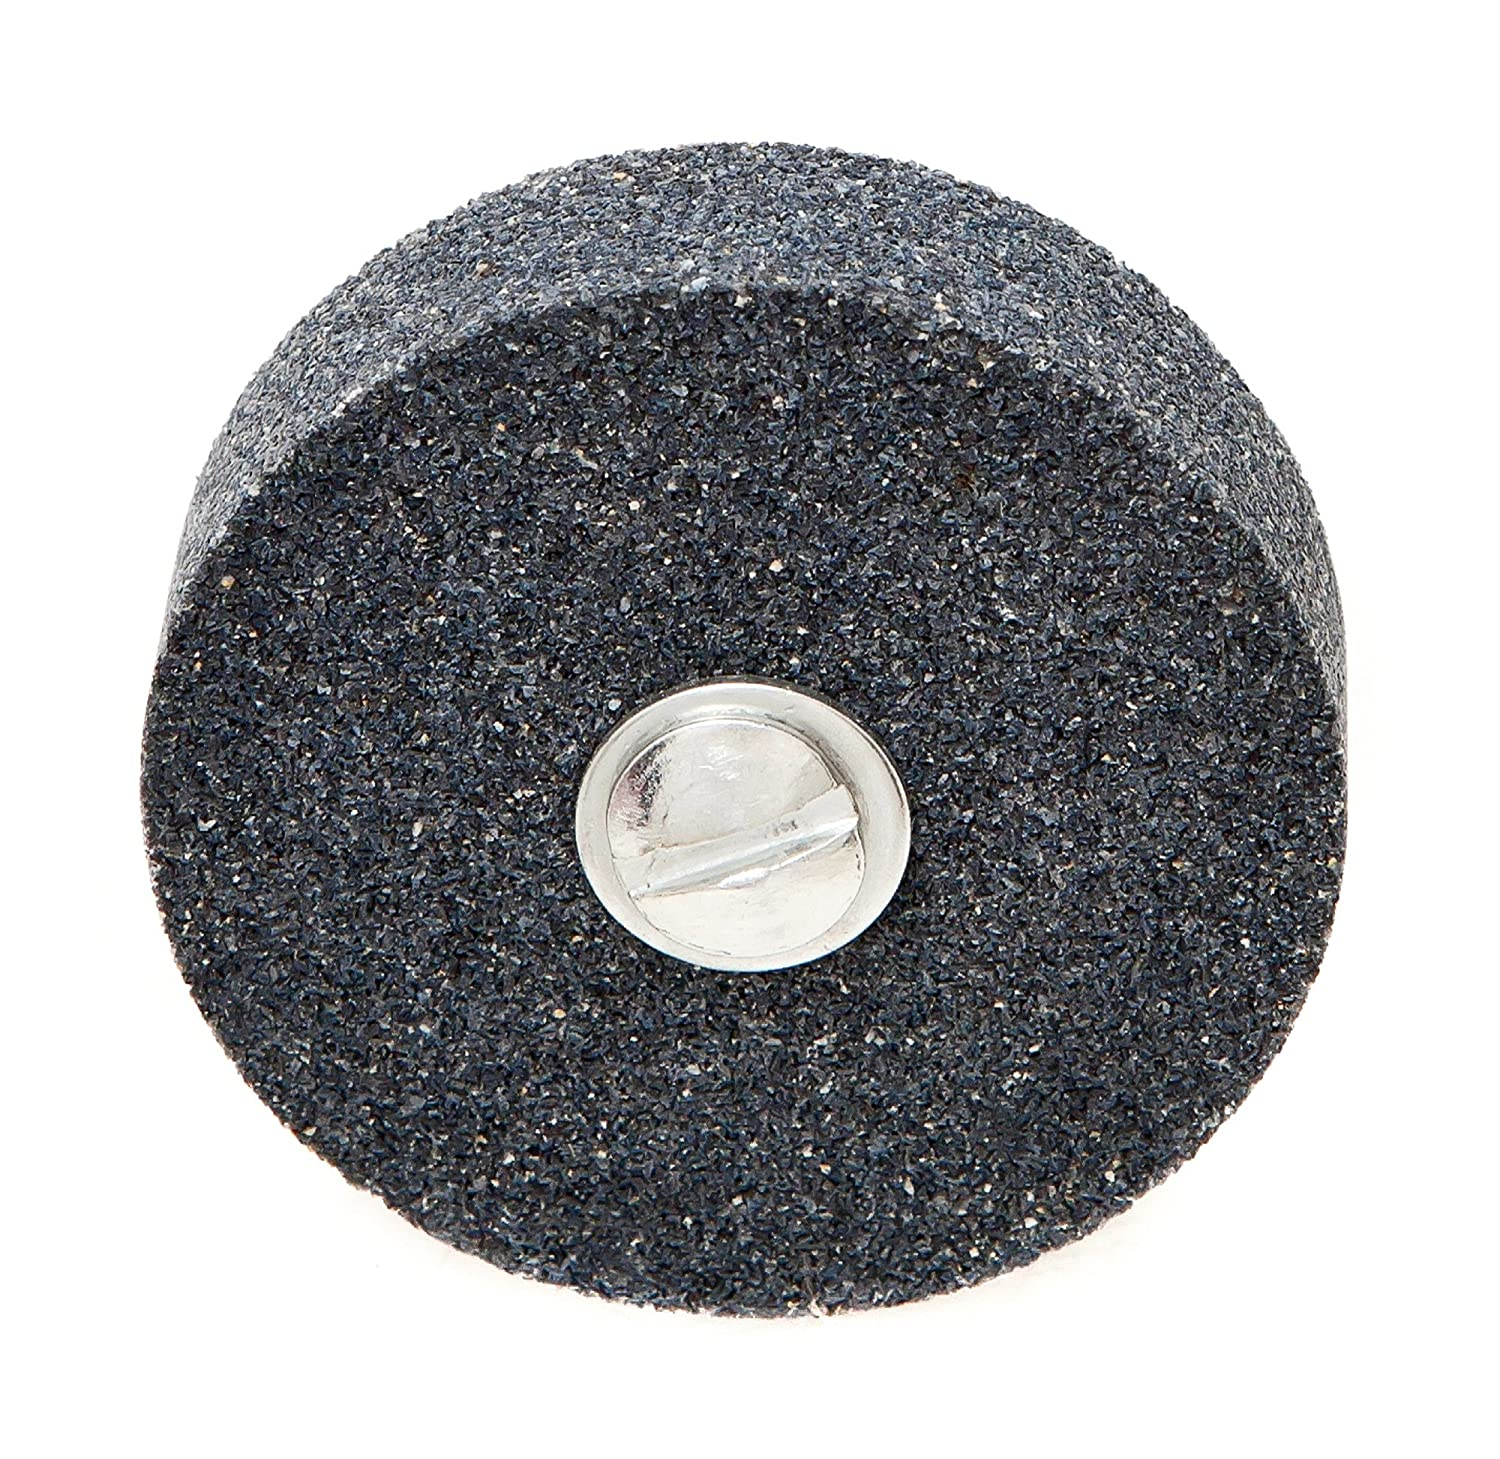 2-Inch-by-1//2-Inch Forney 60053 Mounted Grinding Stone with 1//4-Inch Shank